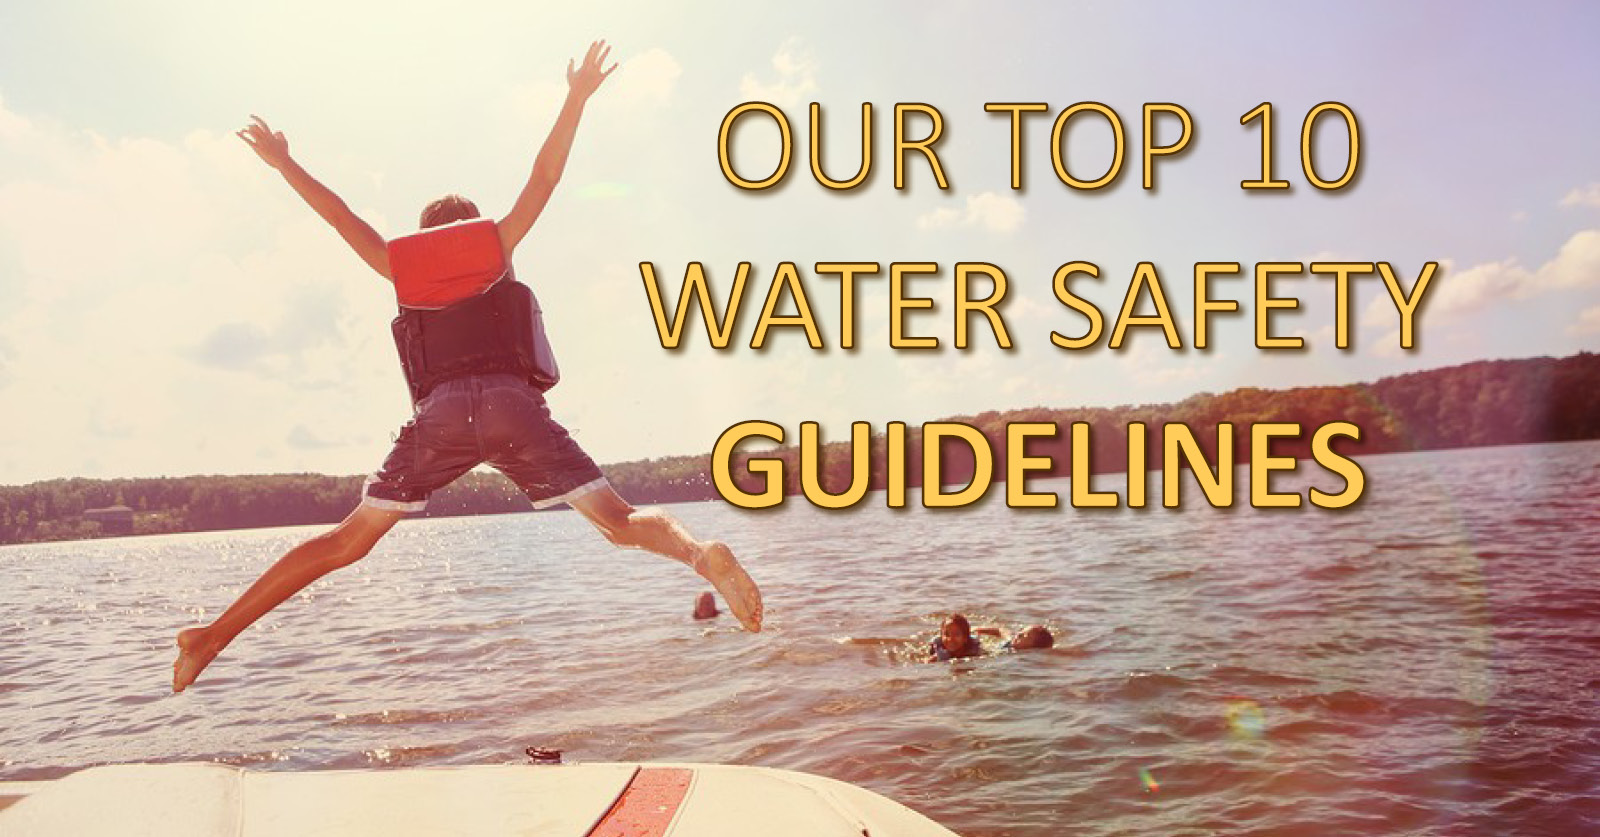 Our Top 10 Water Safety Guidelines